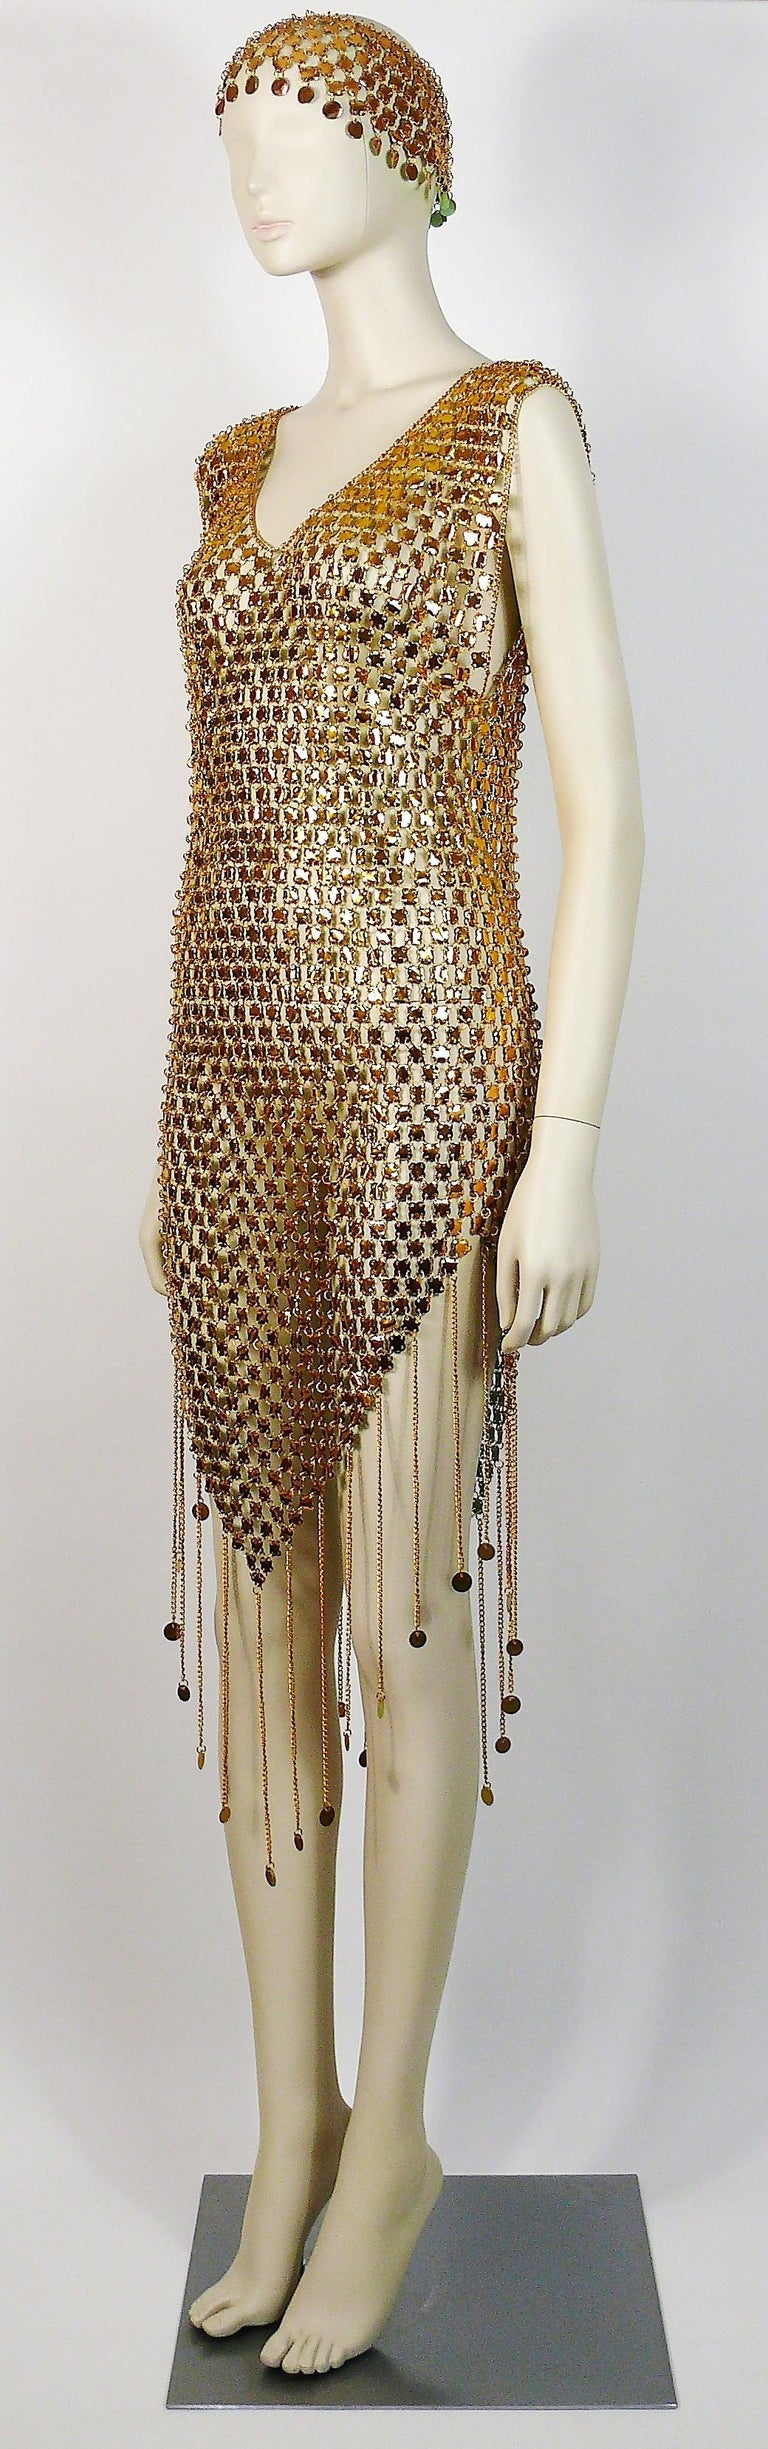 1970s Gold Toned Rhodhoid Chainmail Fringed Dress and Hat For Sale 1